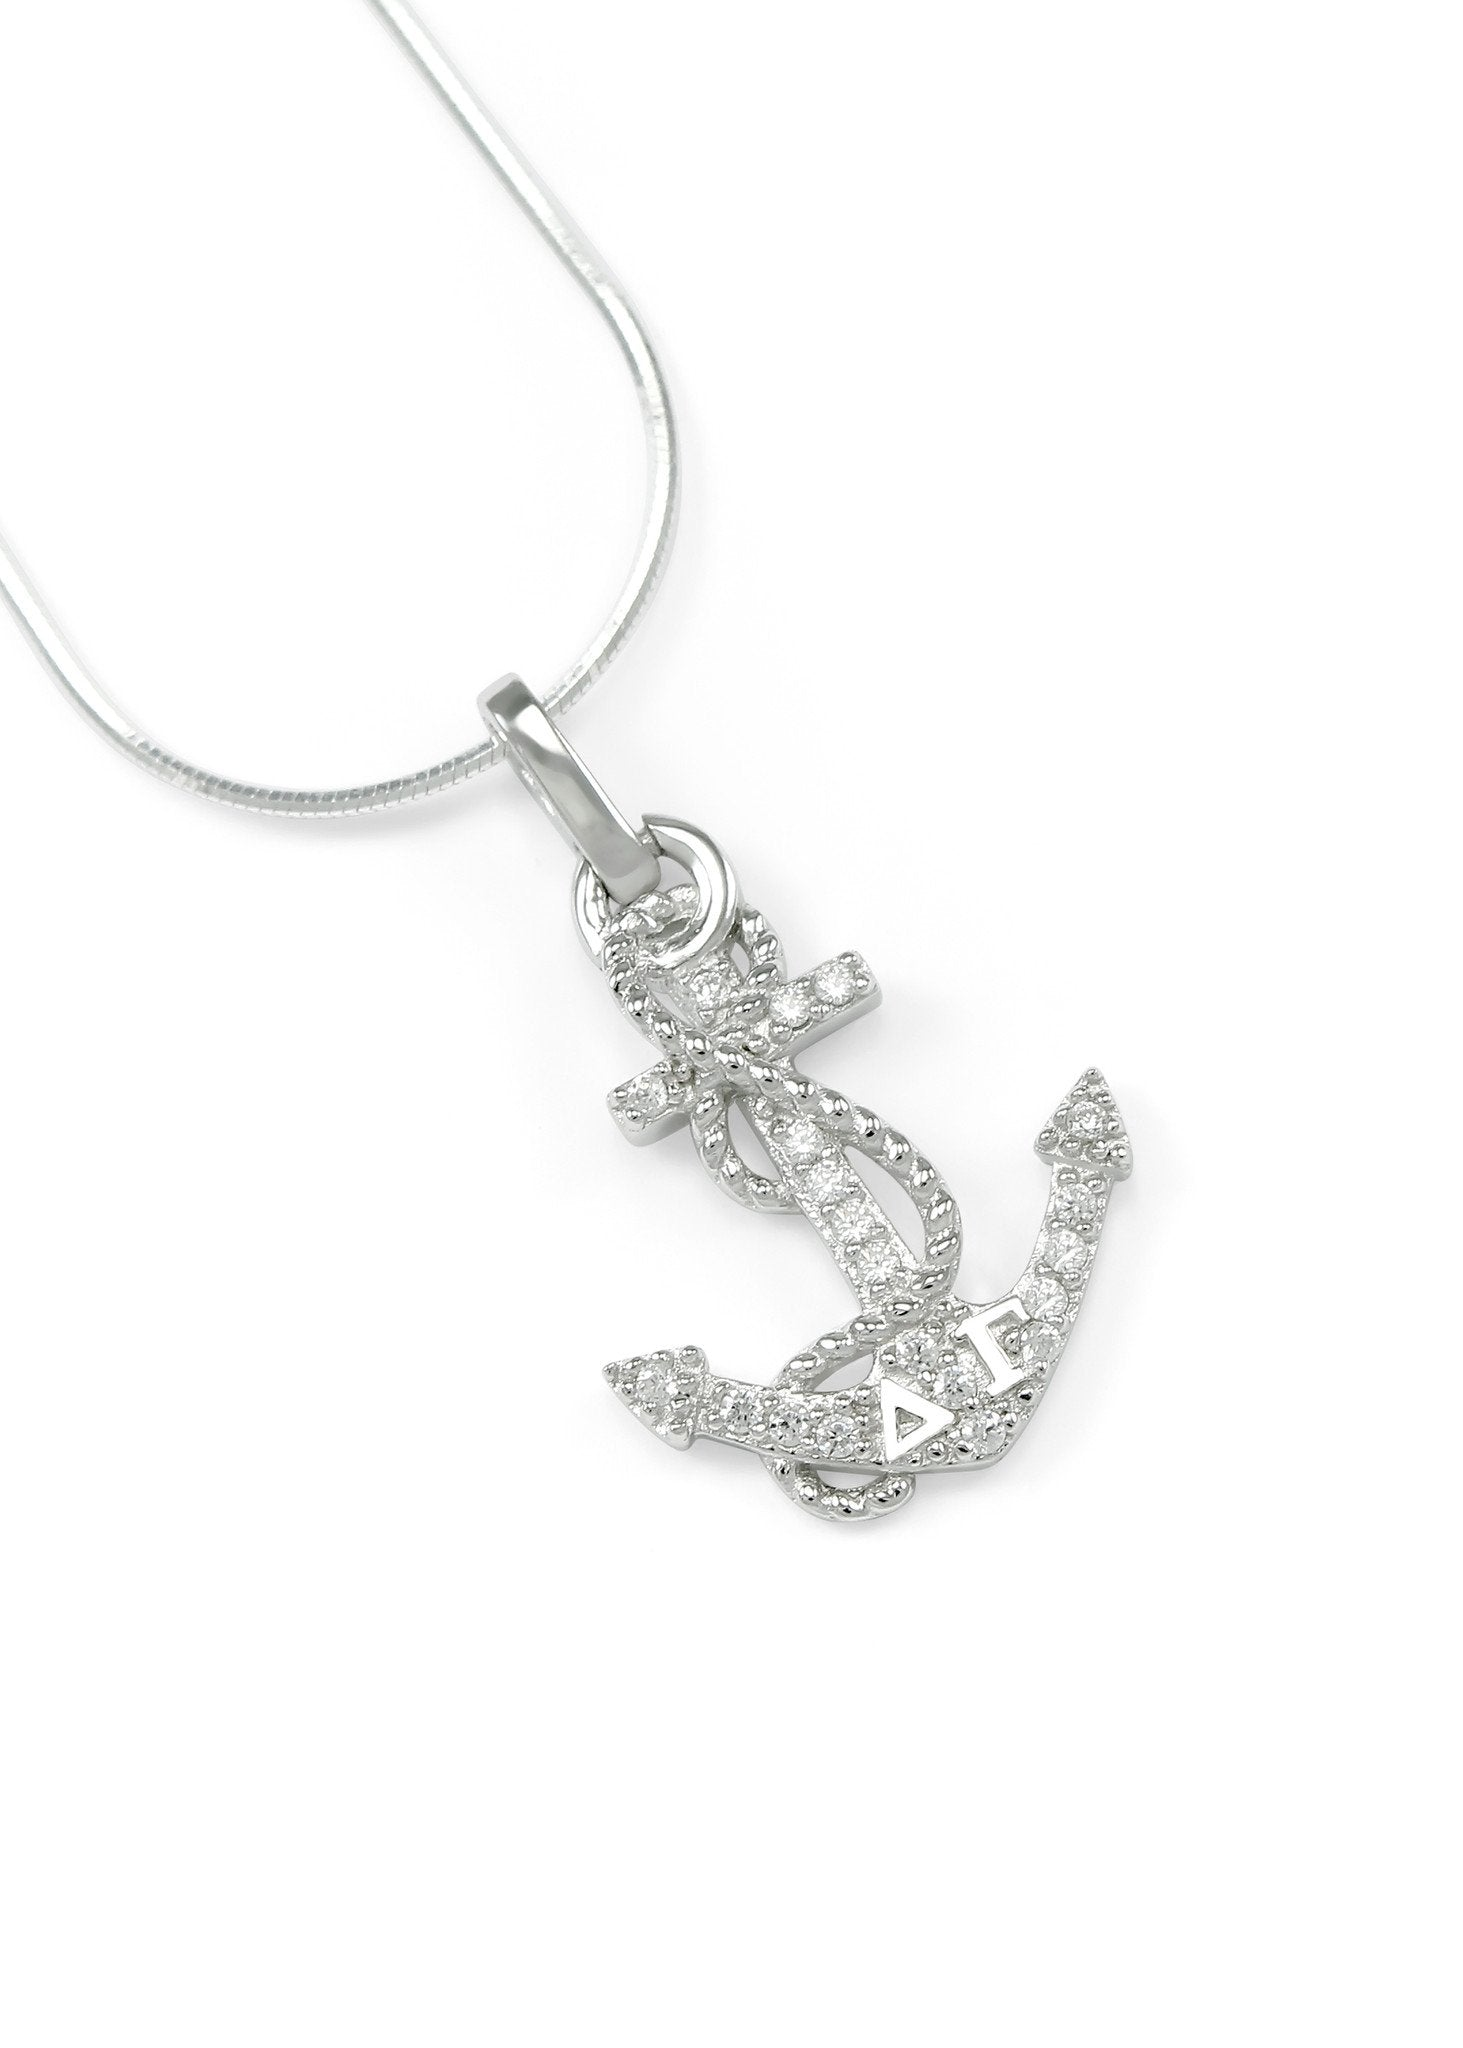 Delta gamma necklace sterling silver anchor necklace the delta gamma sterling silver anchor pendant aloadofball